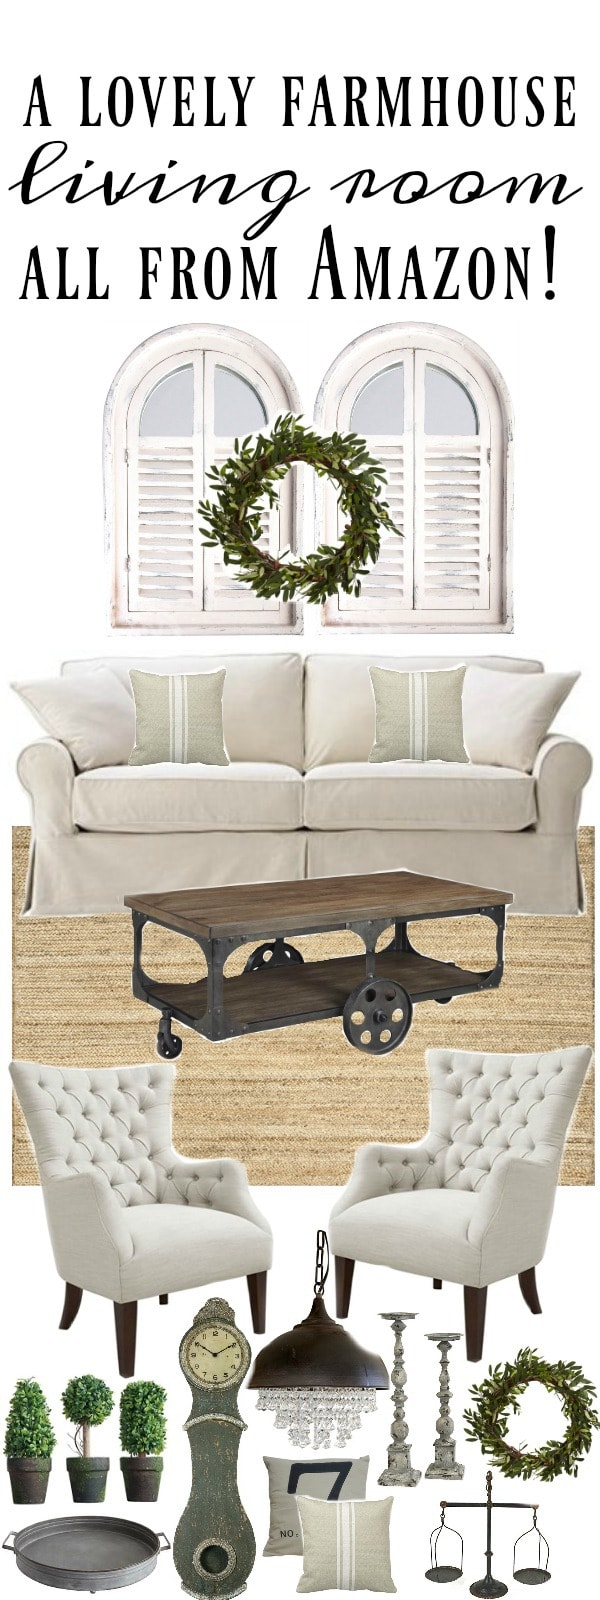 , Farmhouse Living Room All From Amazon